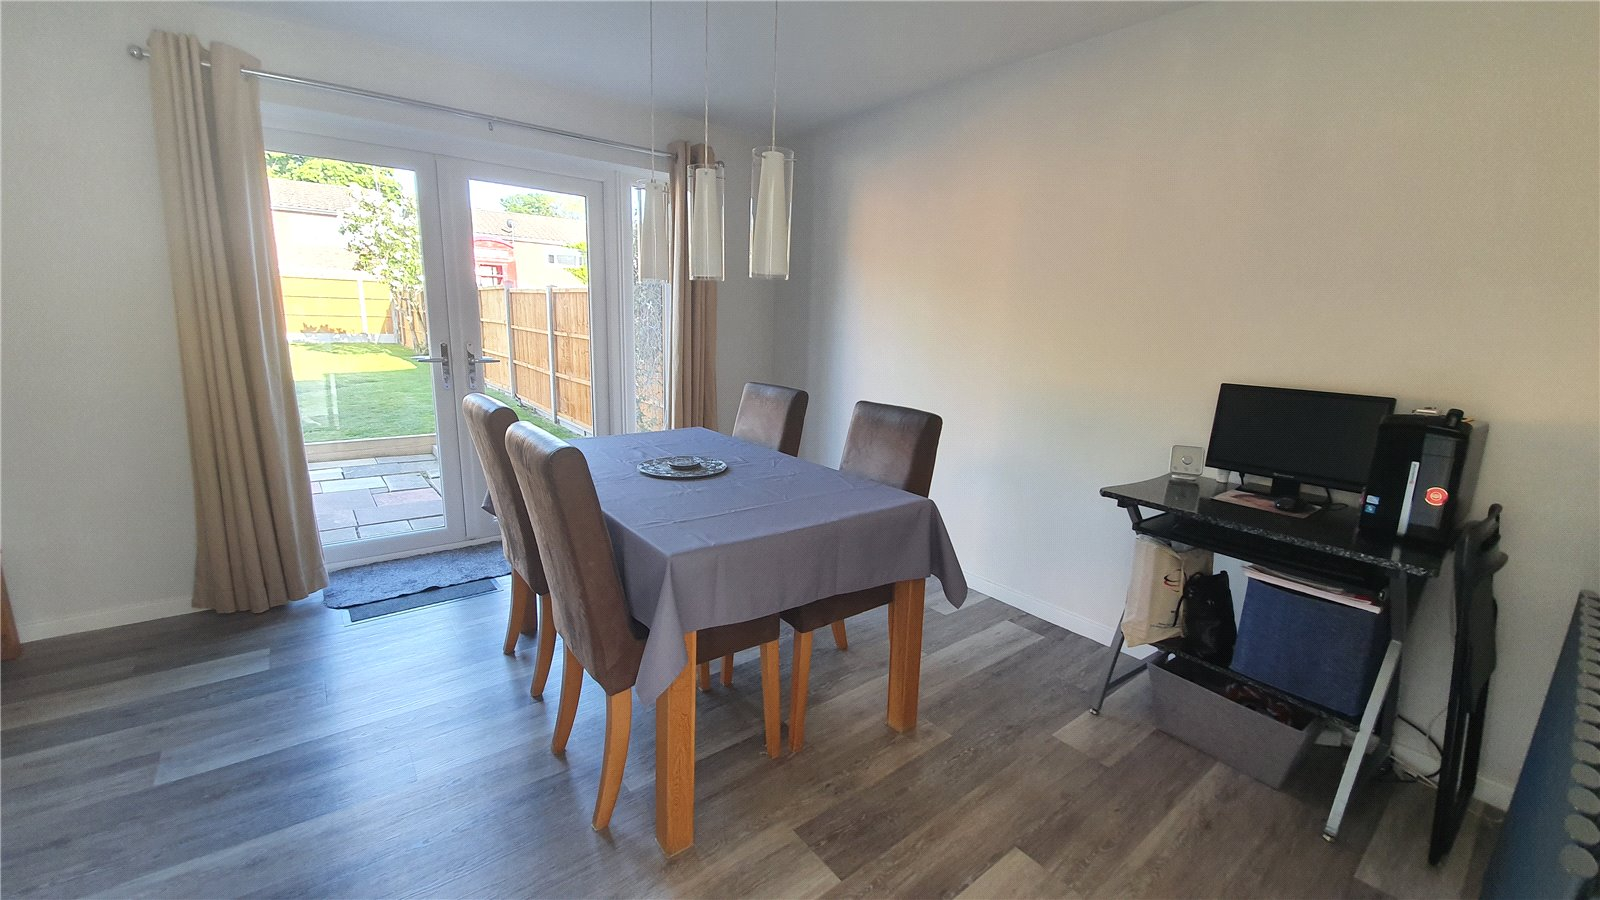 3 bed house for sale in The Sycamores, Little Paxton  - Property Image 2